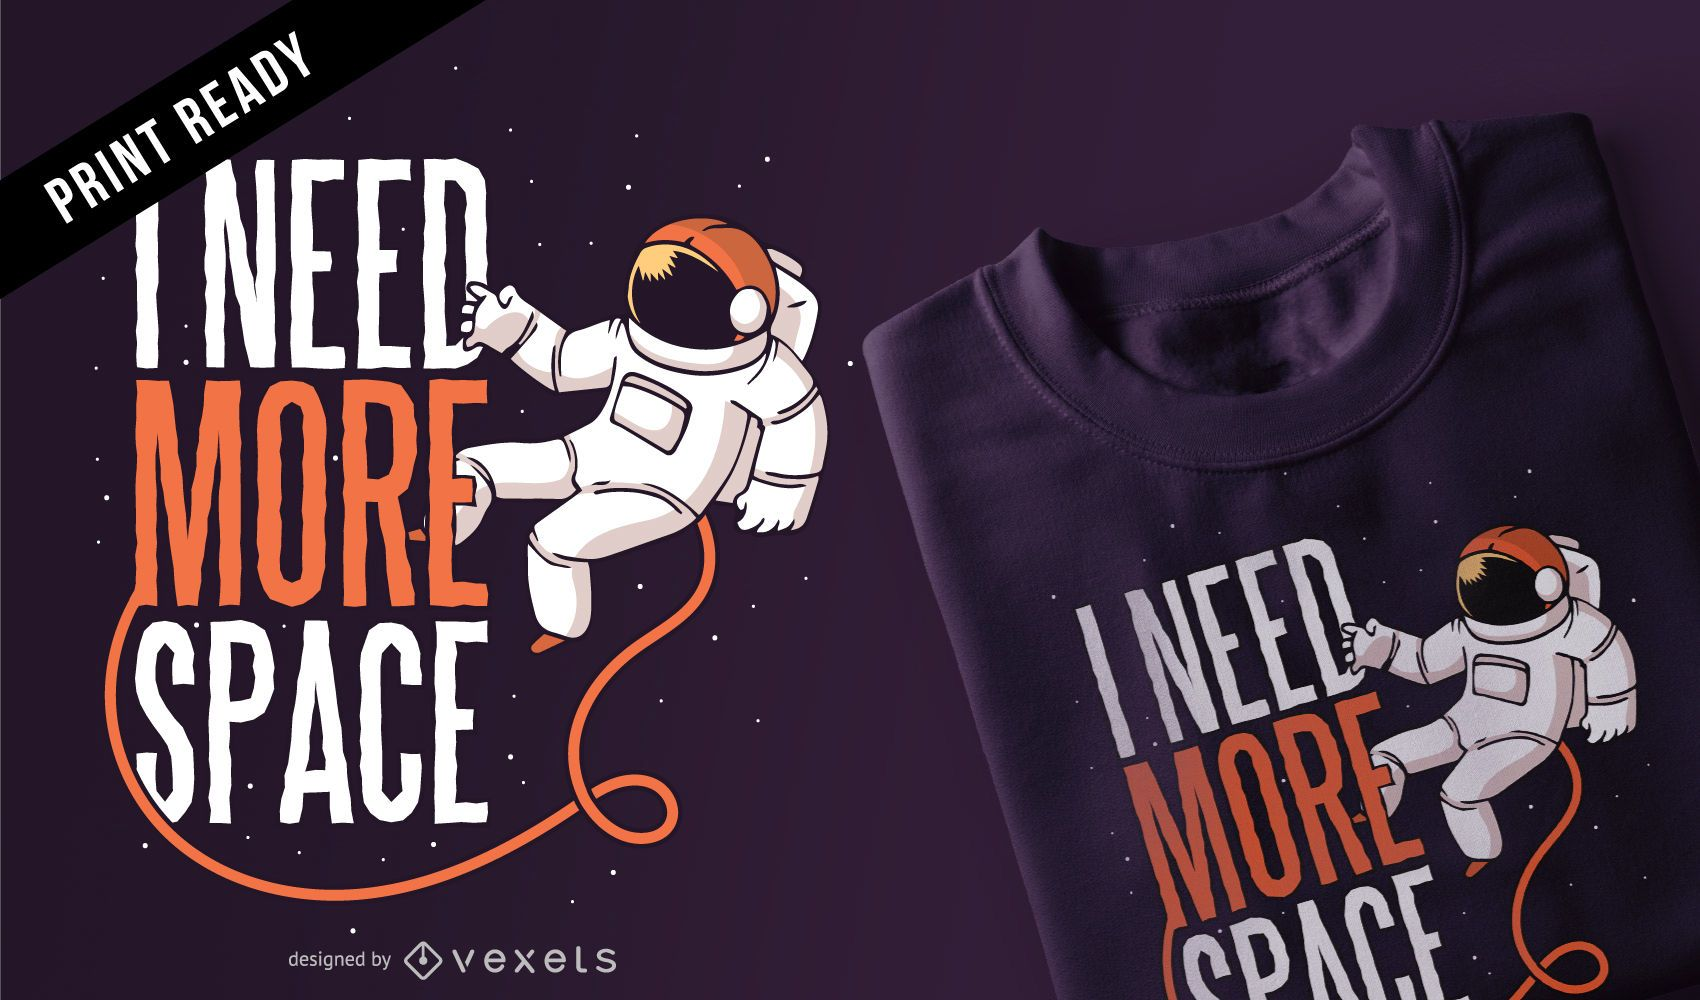 Need more space t-shirt design